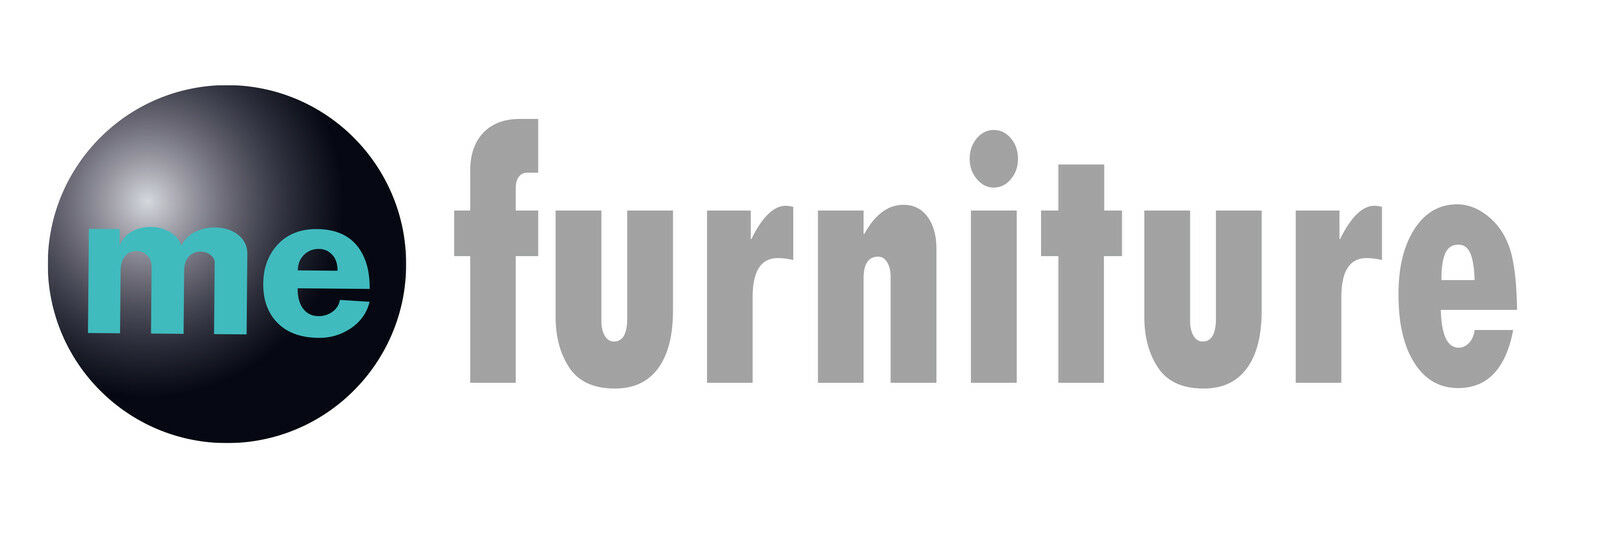 me furniture